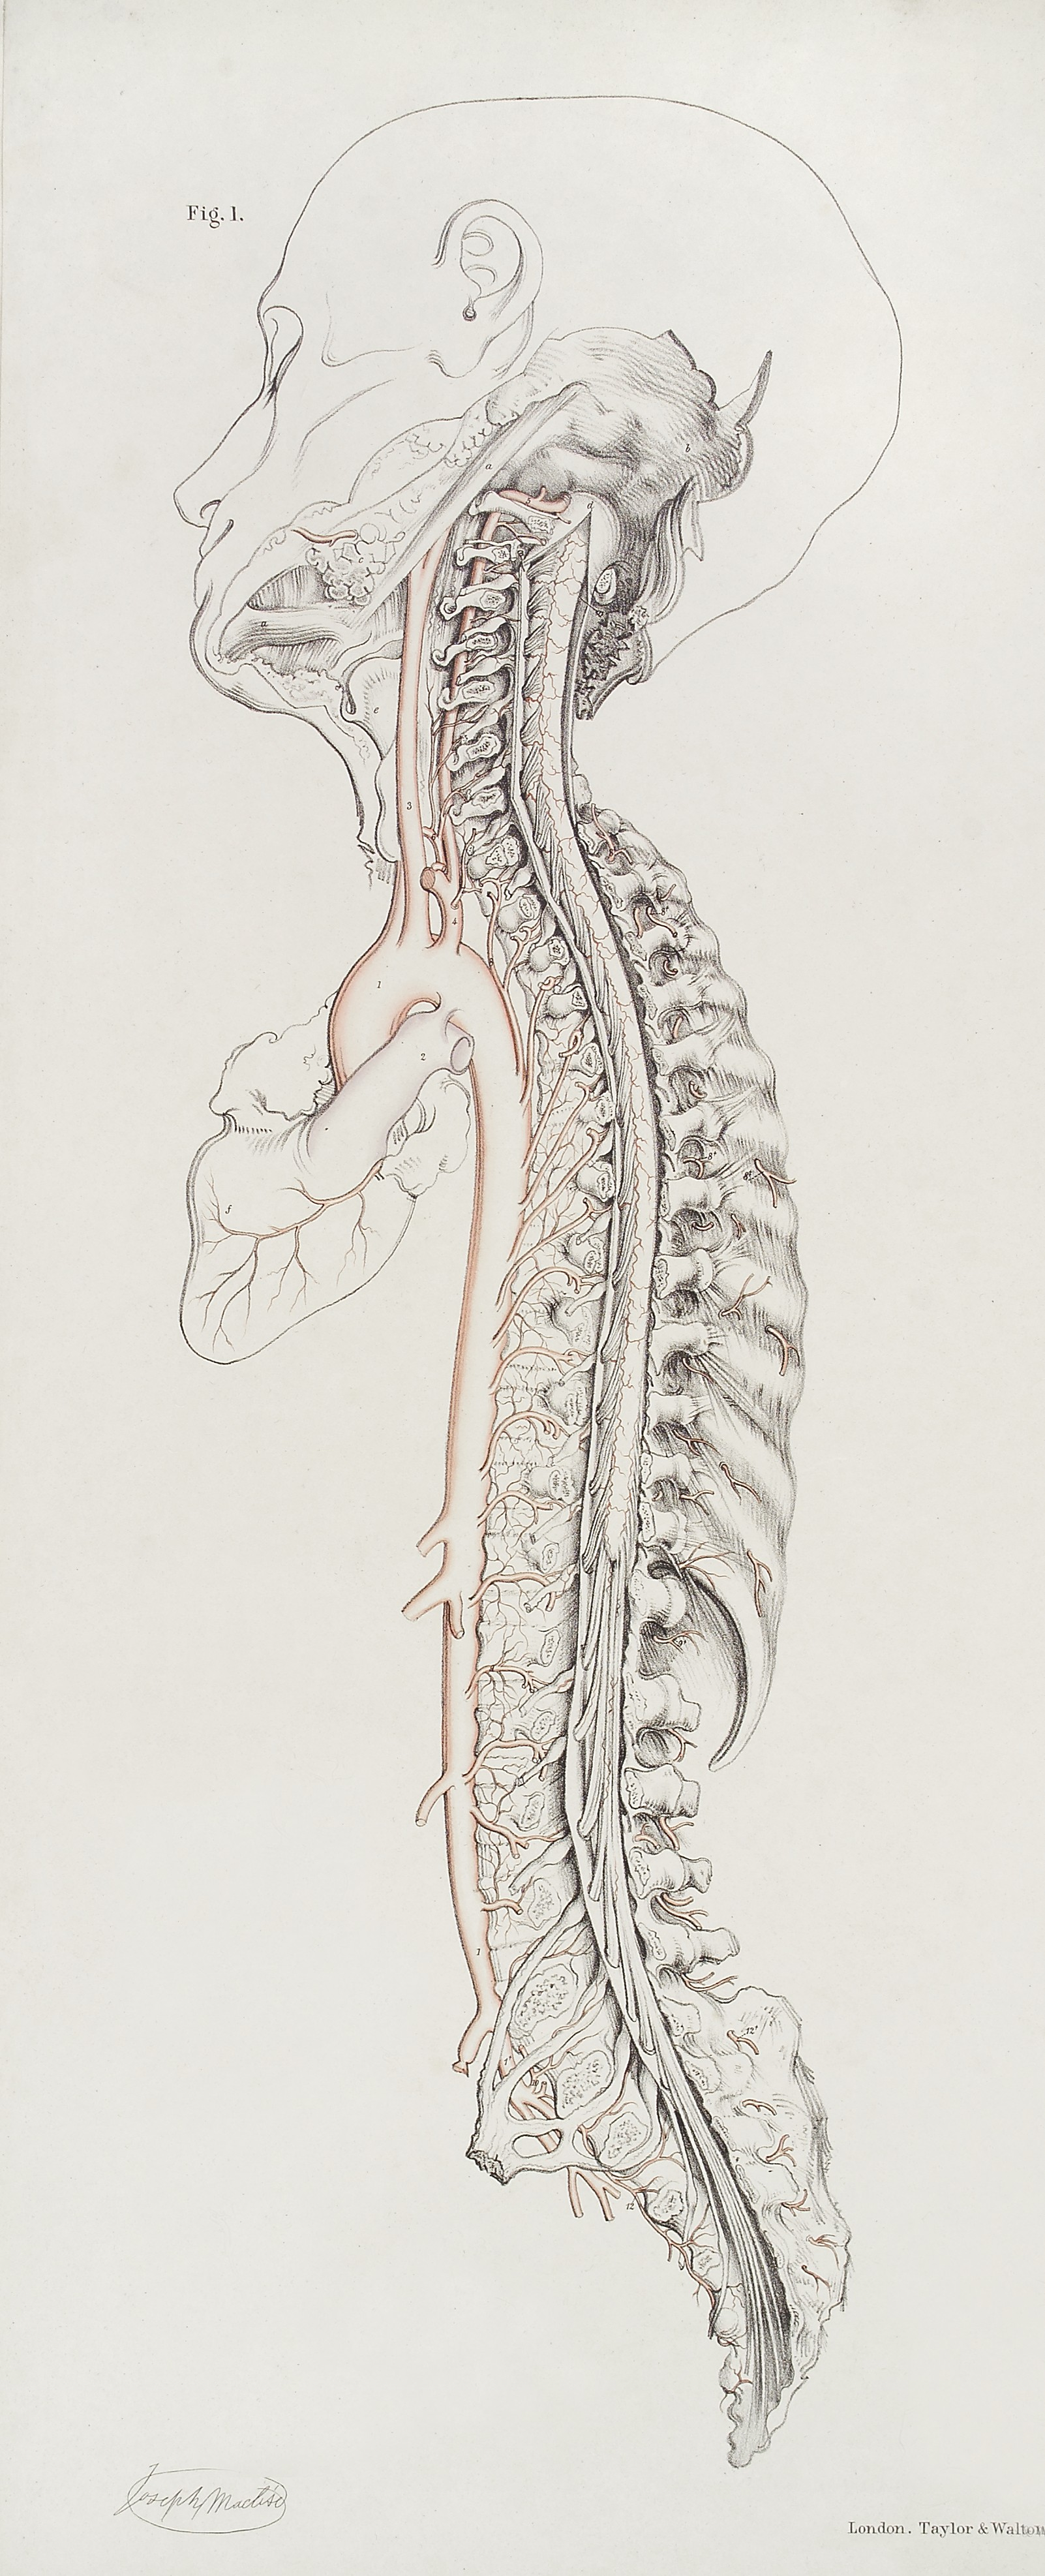 File:Arteries entering spinal canal Wellcome L0037451.jpg ...